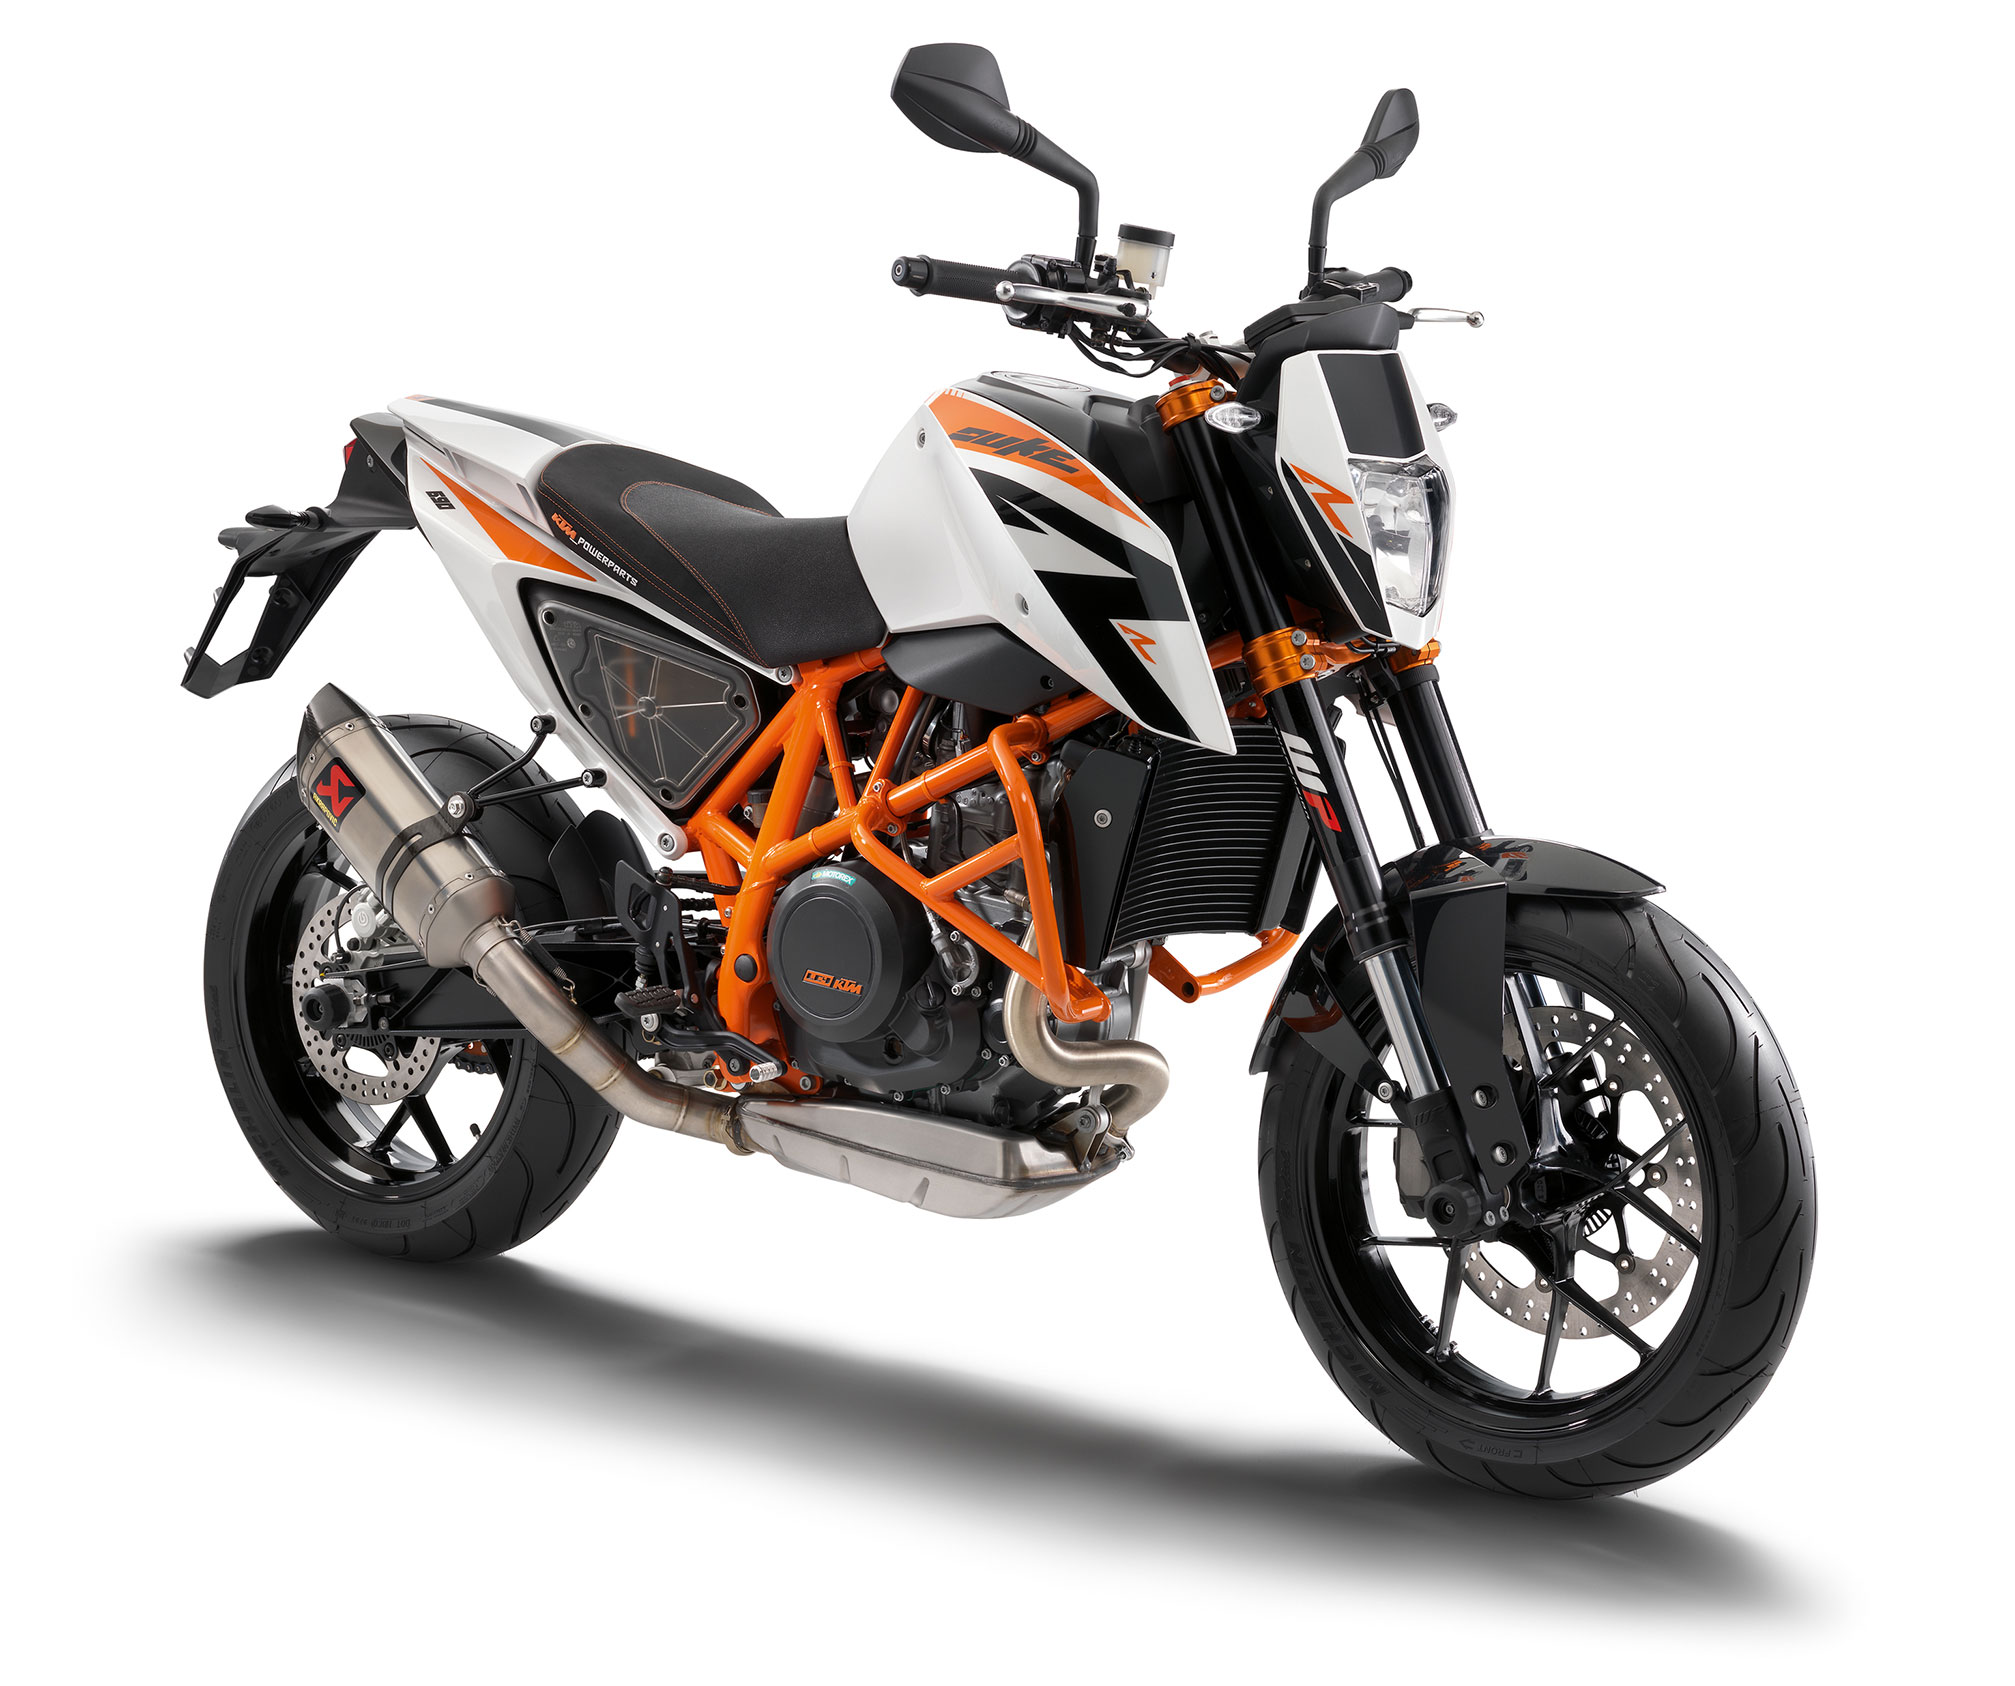 2014 KTM 690 DUKE R ABS Review - Top Speed